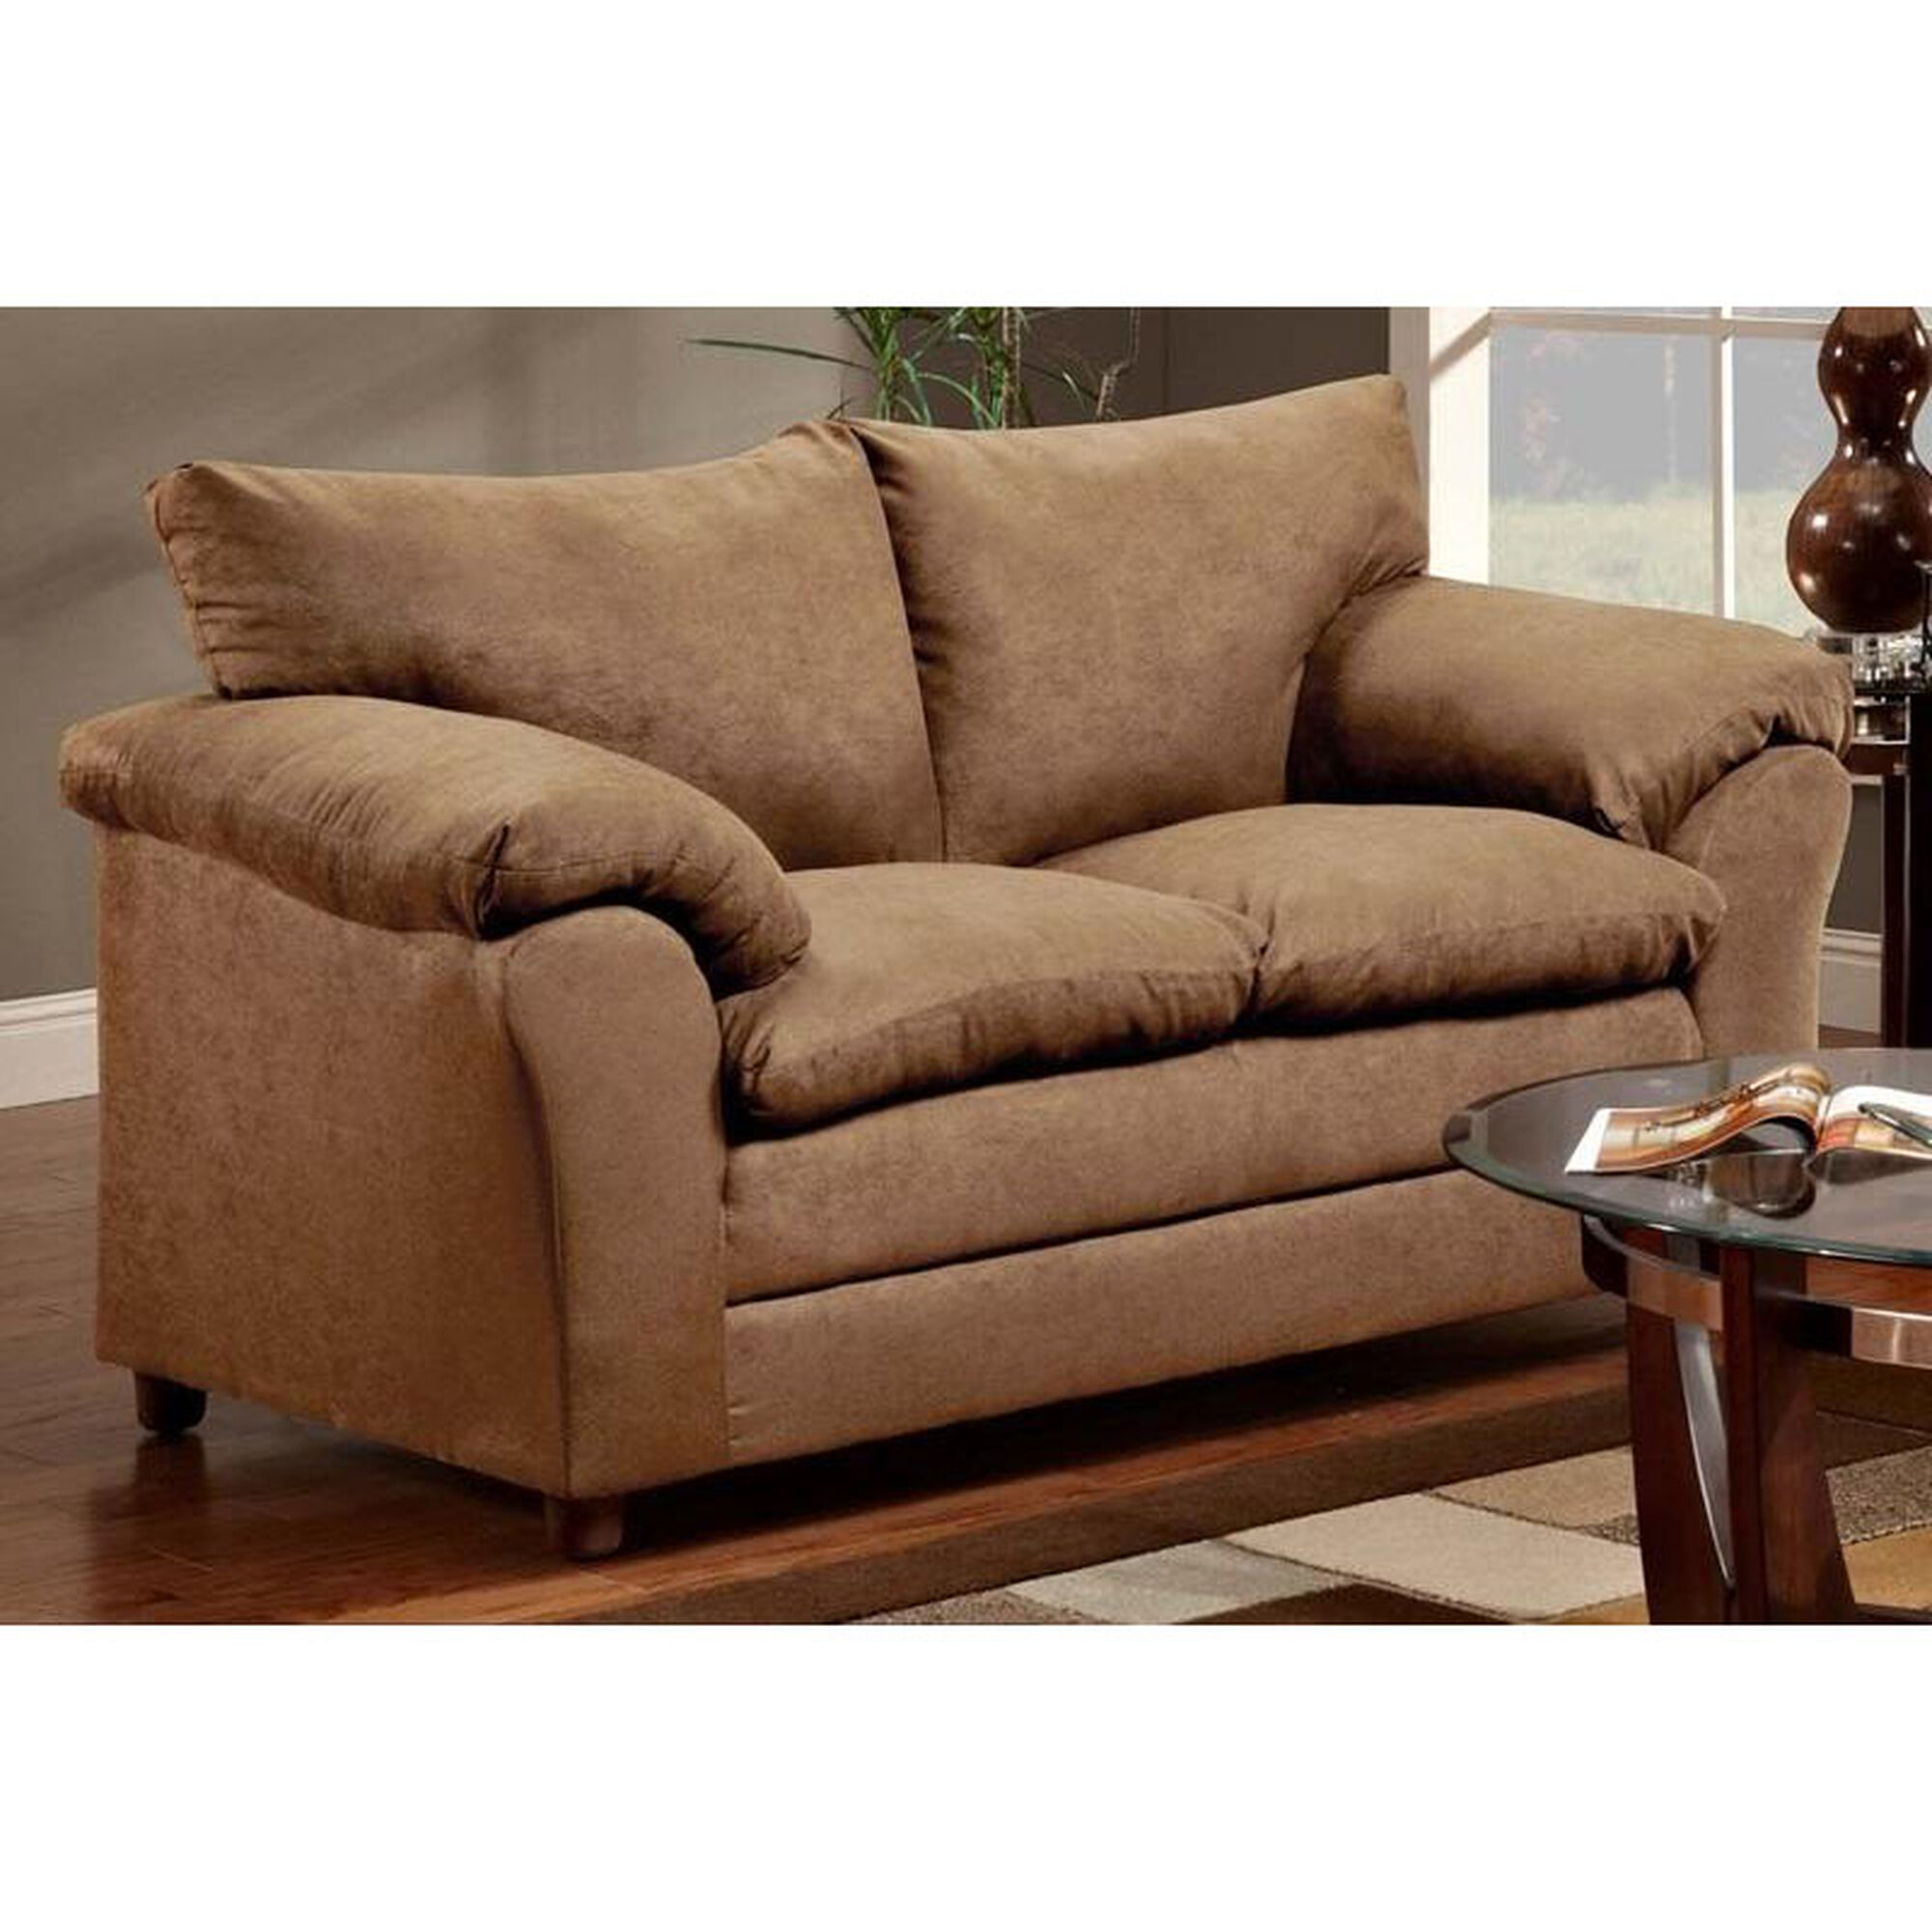 Chelsea home furniture gail transitional style polyester for Home furnishing sites